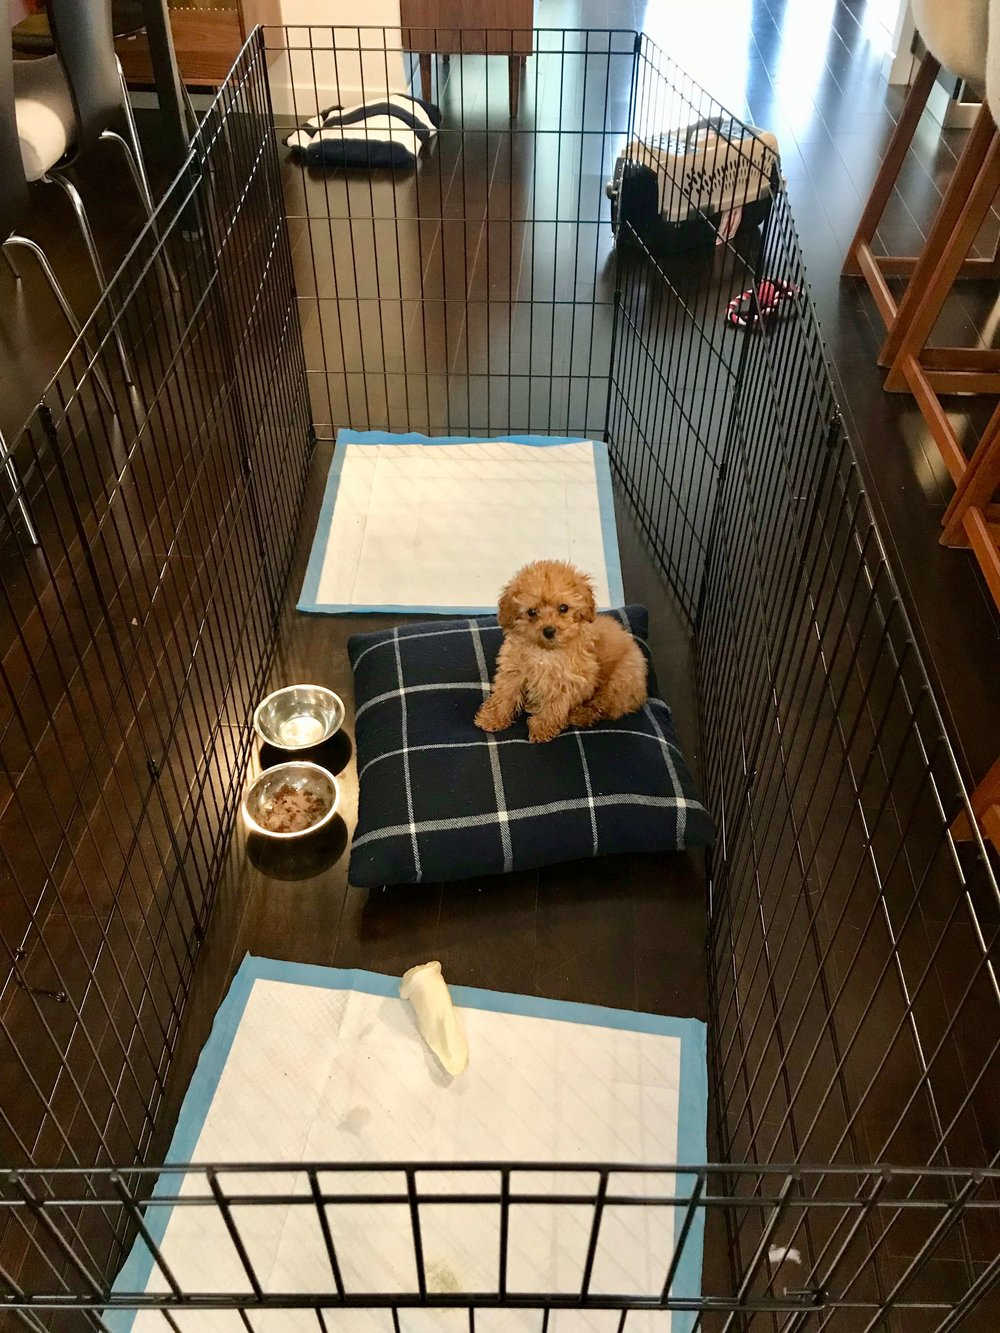 How to prevent separation anxiety: Keeping a puppy in a playpen is helpful for teaching it to spend time by itself.